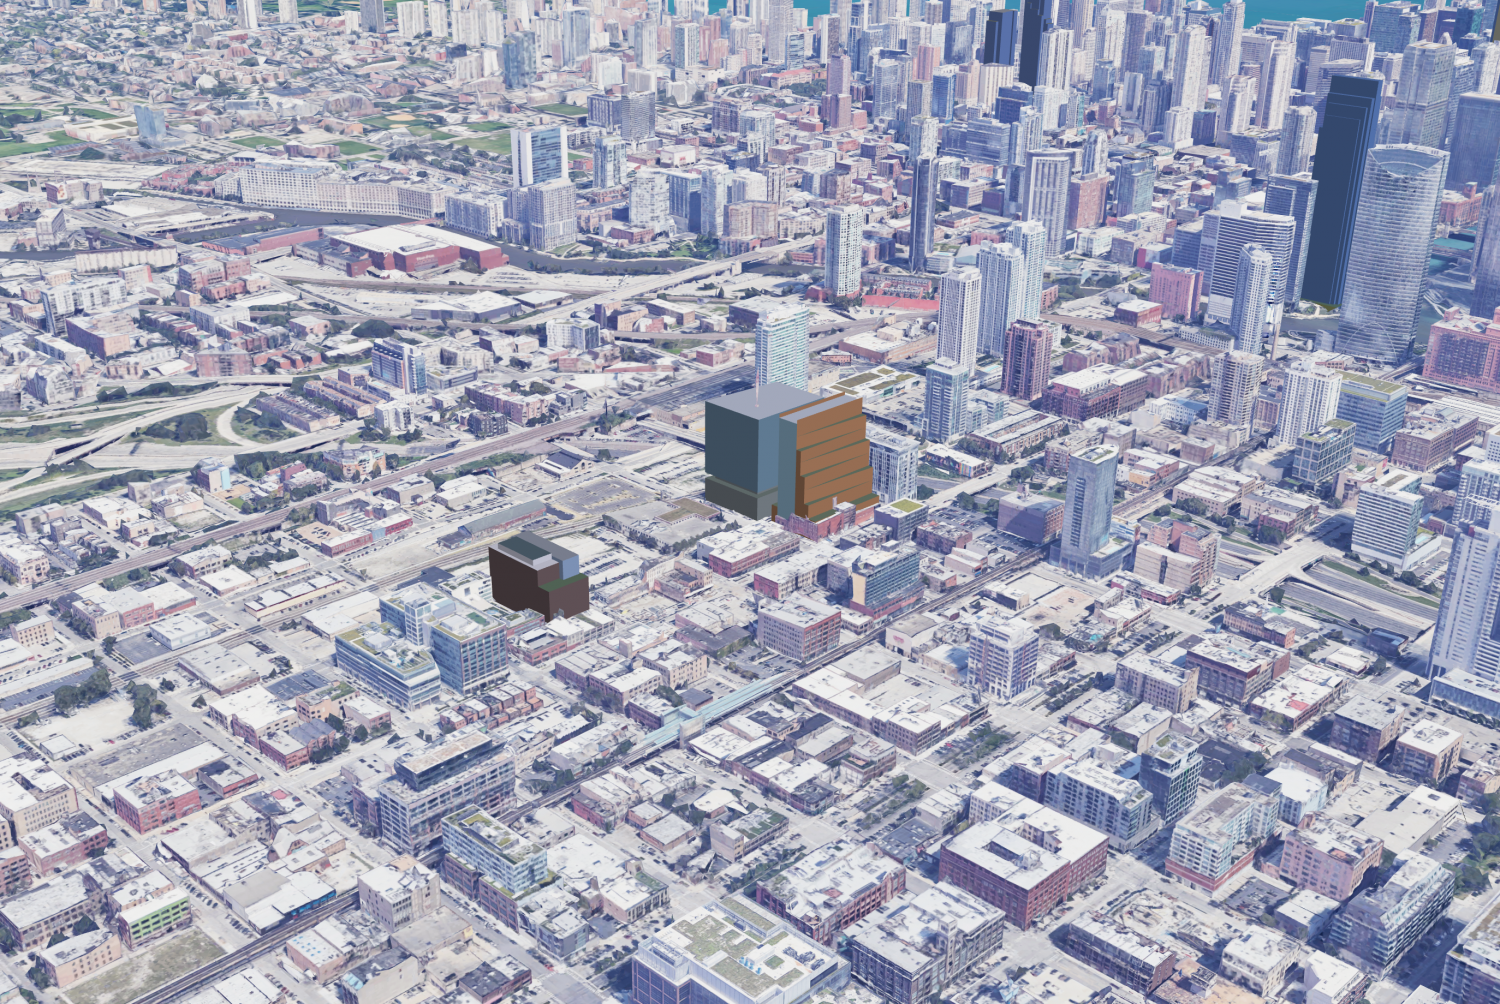 Massing models of 320 N Sangamon (left), 800 W Fulton Market (right of center), and 333 N Green Street (just behind 800 W Fulton Market), facing northeast